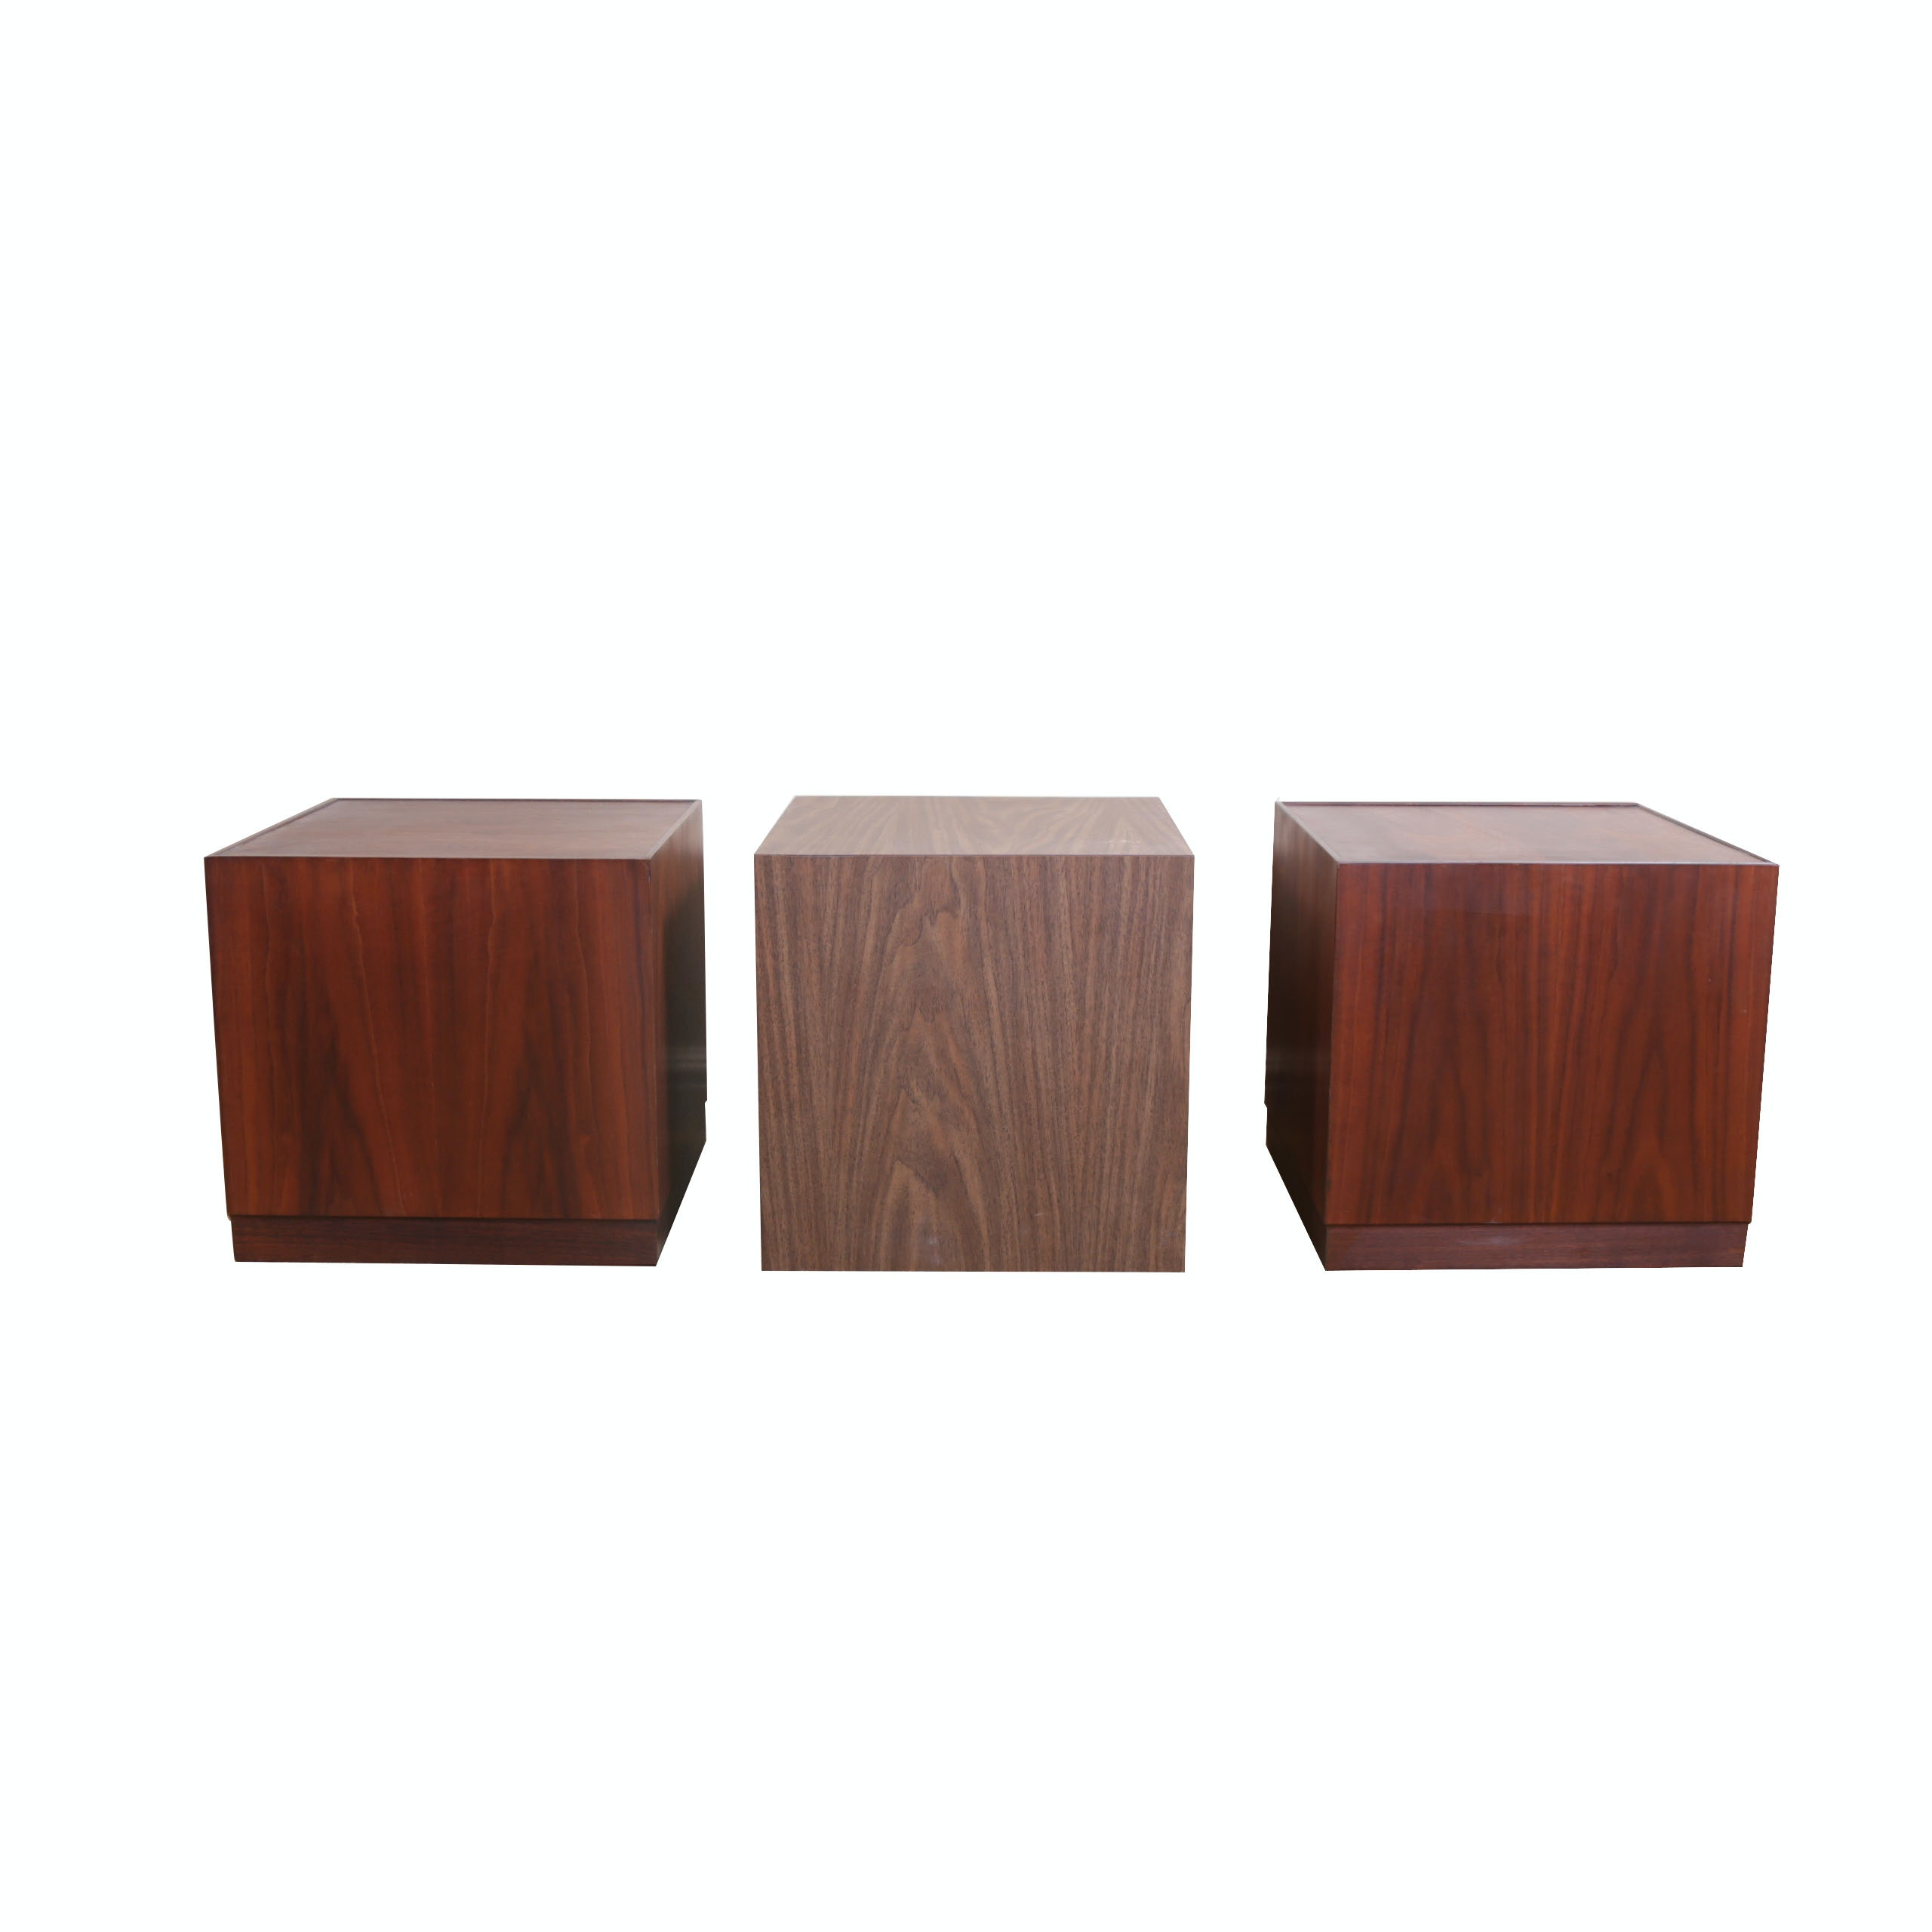 Mid 20th Century Wooden Cube Accent Tables